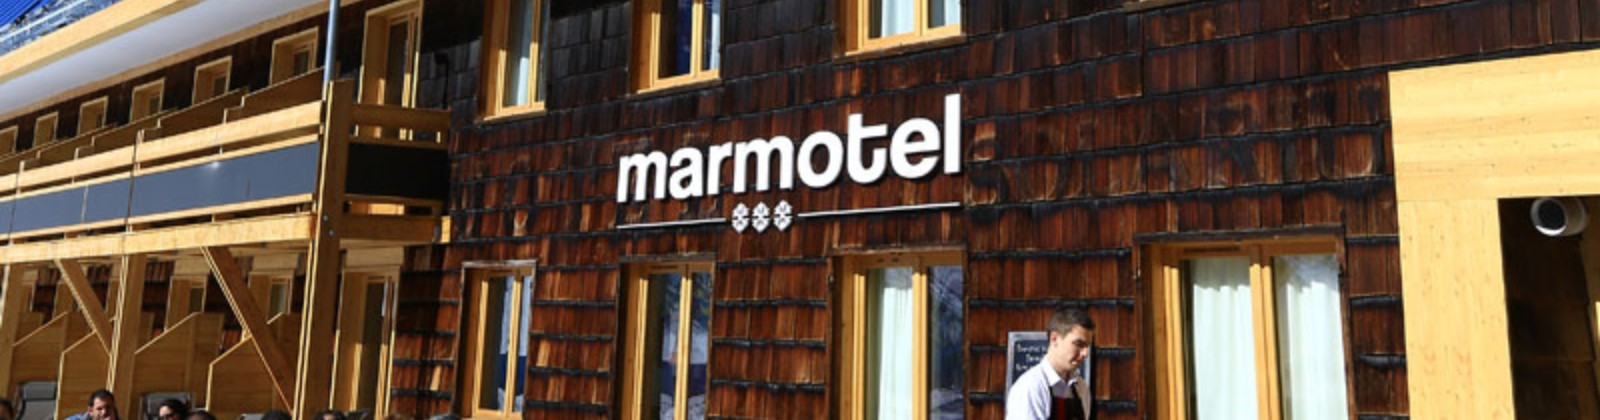 le marmotel hotel et spa olevene restaurant events